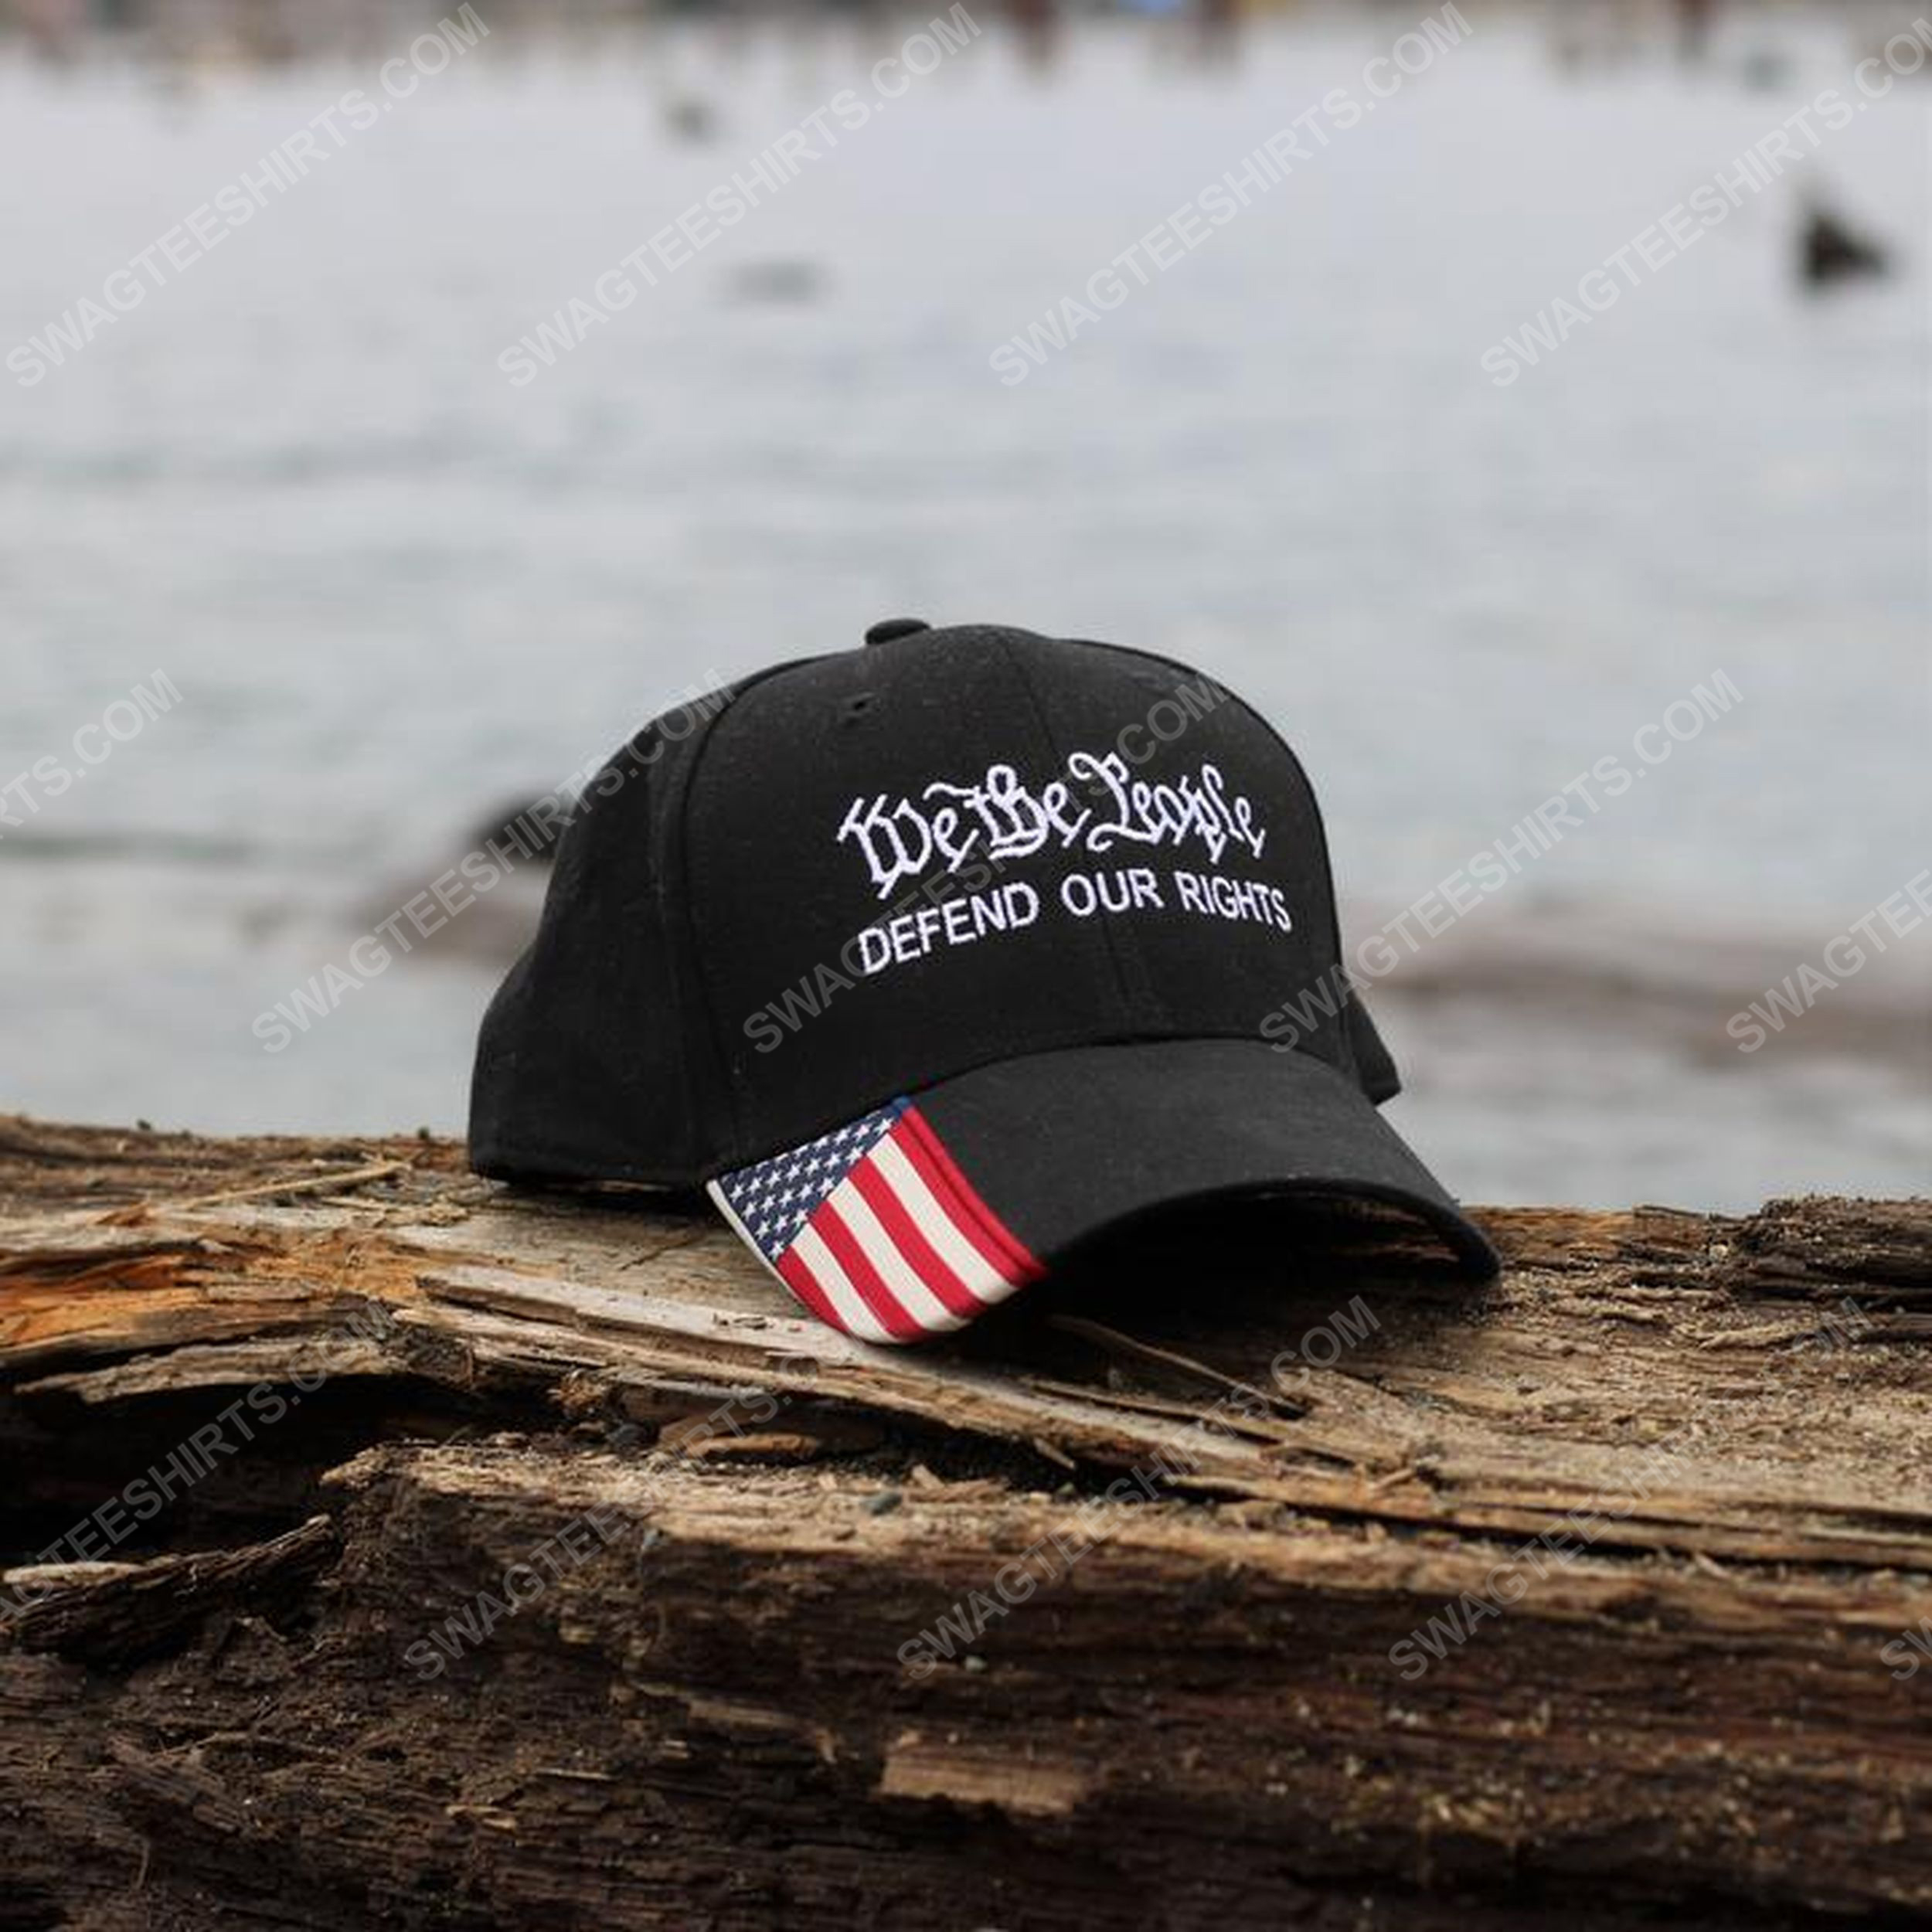 We the people defend our rights american flag full print classic hat 1 - Copy (3)